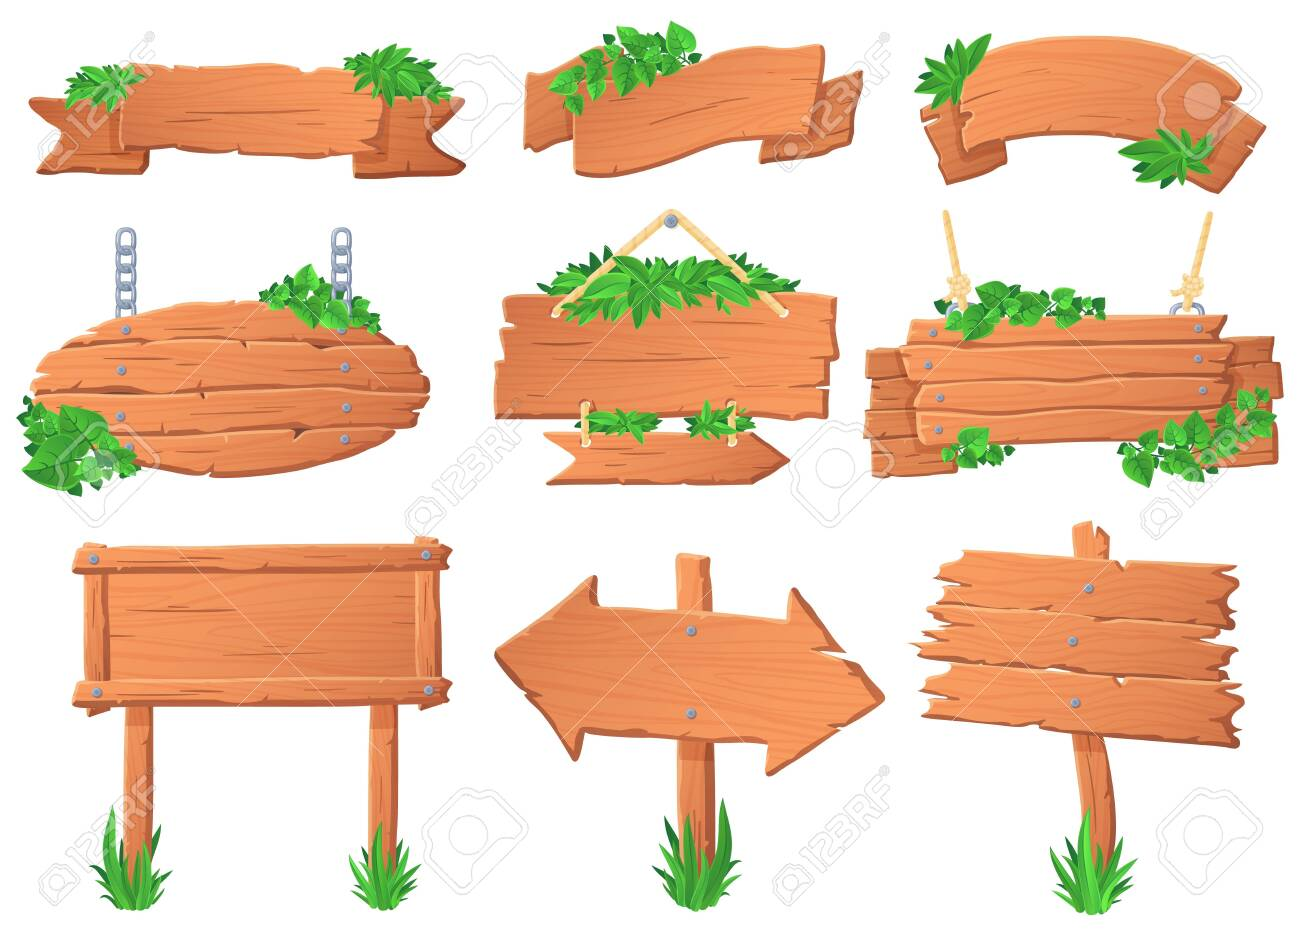 Wooden signboard with leaves. Tropical leafs on wood board, green label sign and jungle forest pointer boards vector set. Collection of signposts, guideposts and hanging banners overgrown with plants. - 140867750